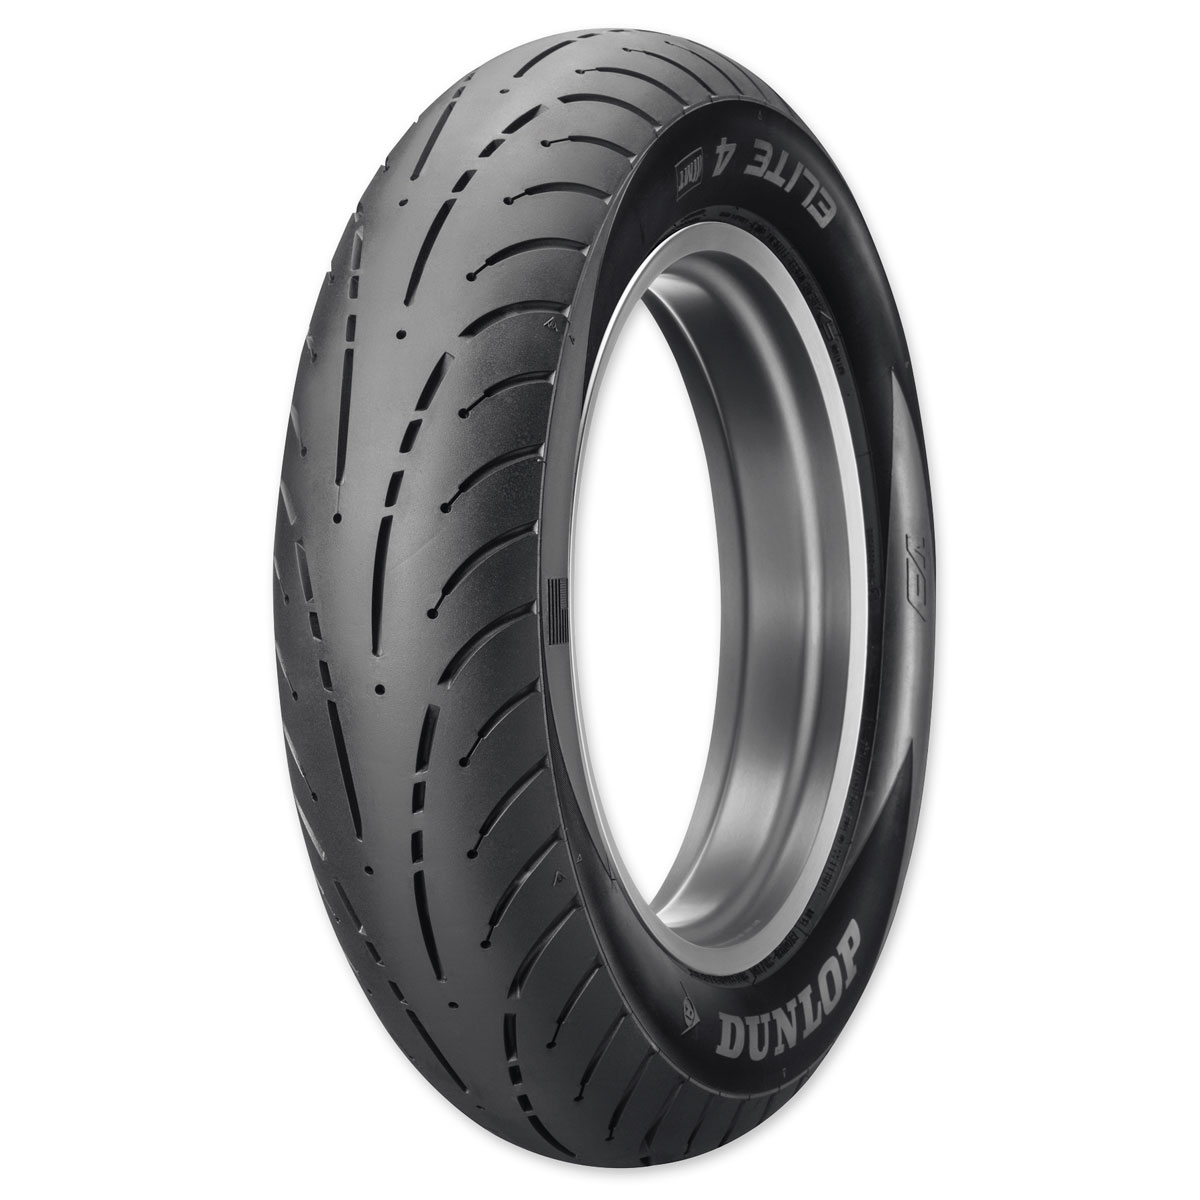 Dunlop Elite 4 170/80B15 Rear Tire